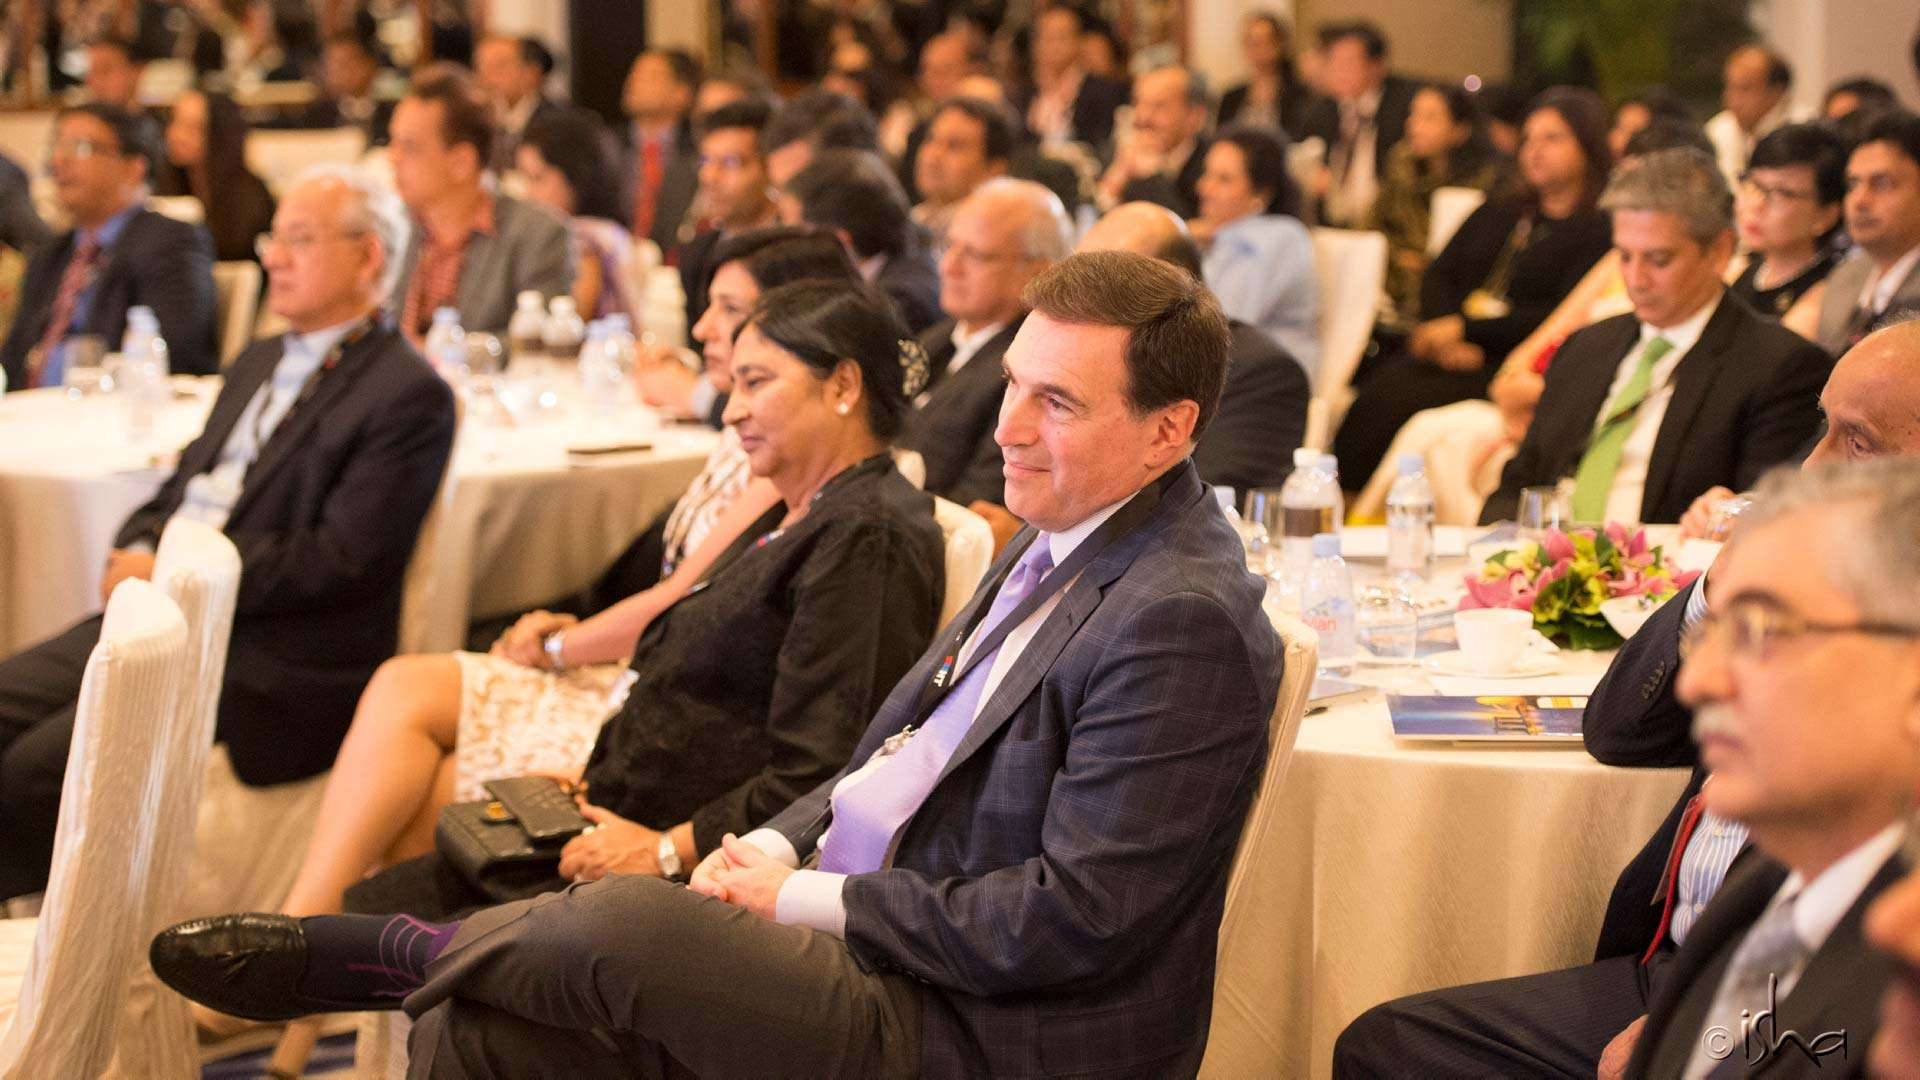 An illustrious gathering of international leaders was in attendance at the Summit in Singapore